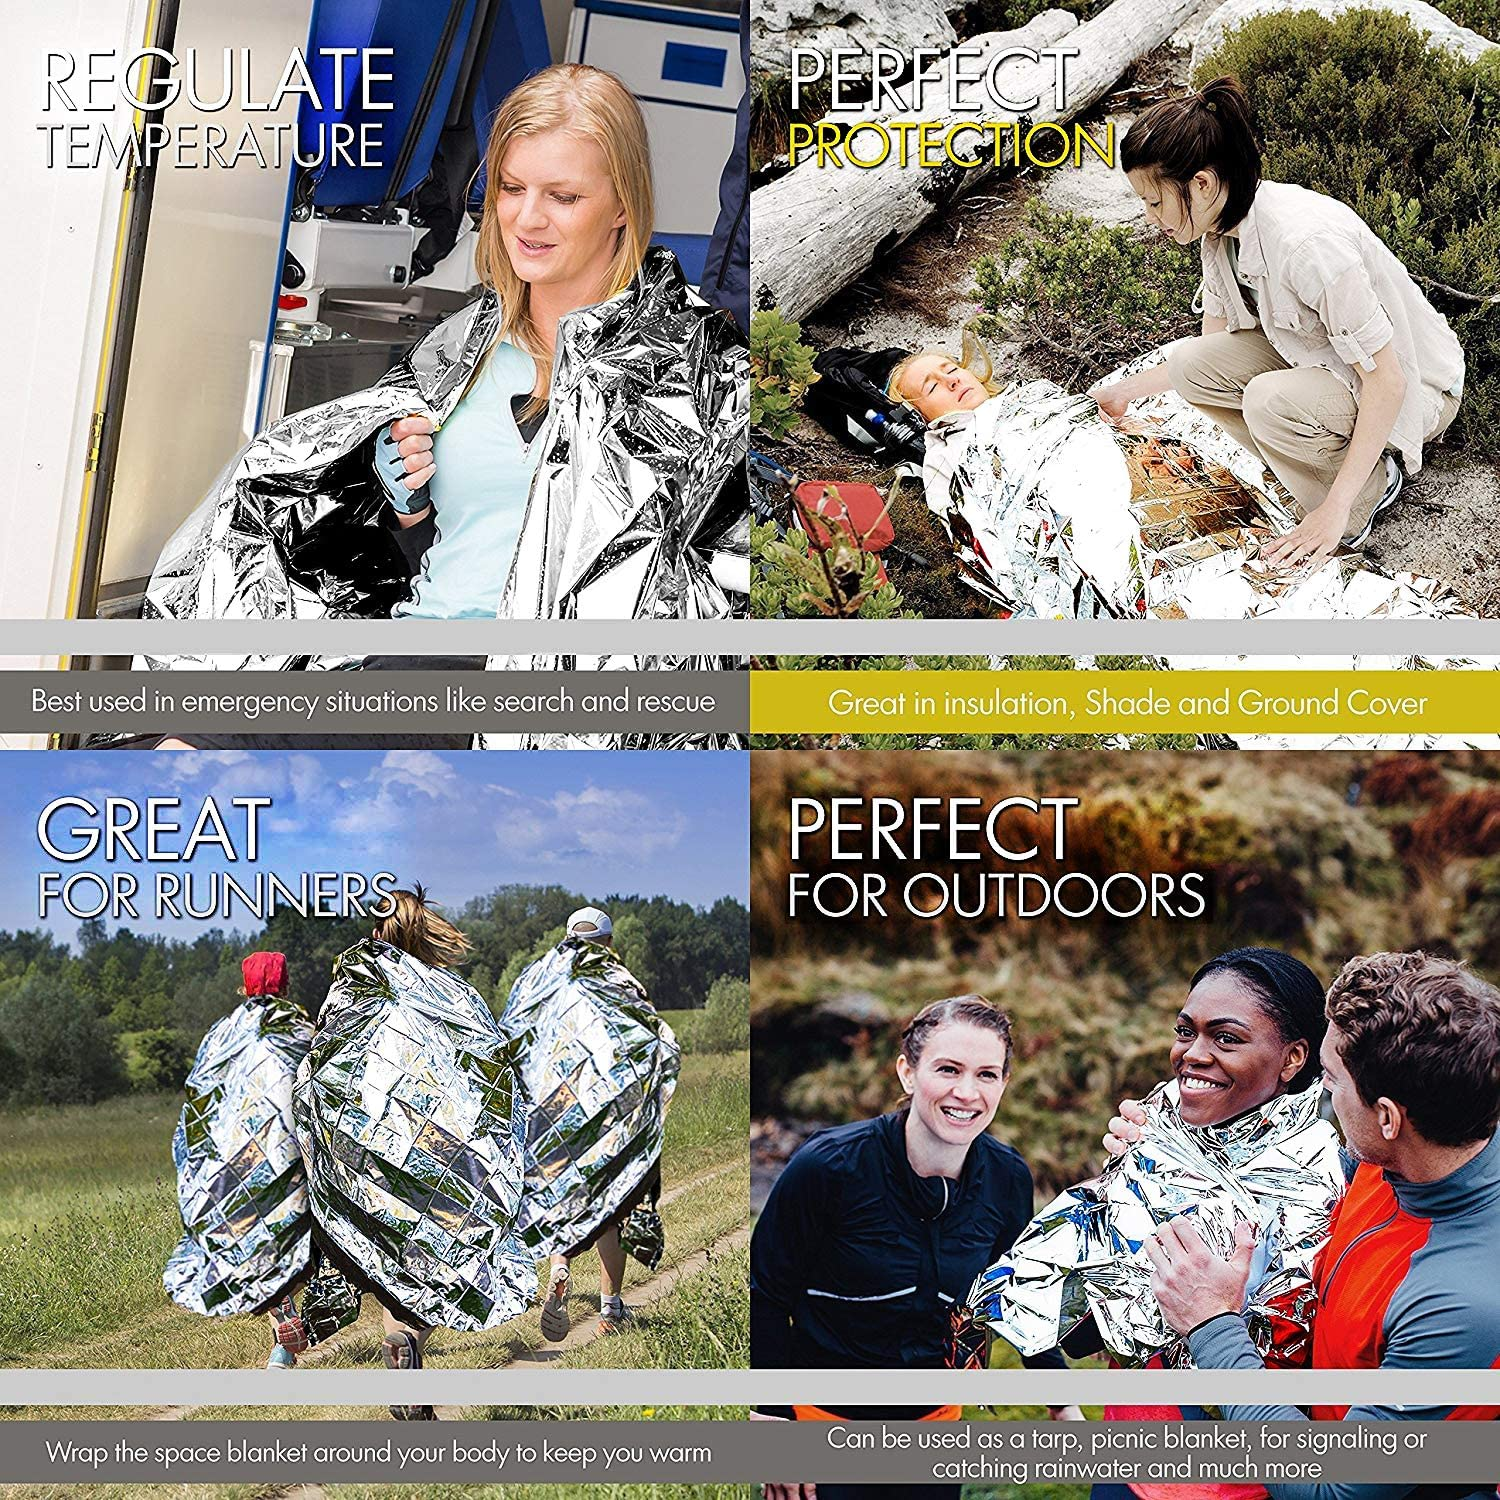 Disasters Emergency. 4-Pack First Aid Kit Camping Hiking Mylar Blanket Perfect for Outdoor EVERLIT Emergency Thermal Blankets Space Blankets Survival Blankets